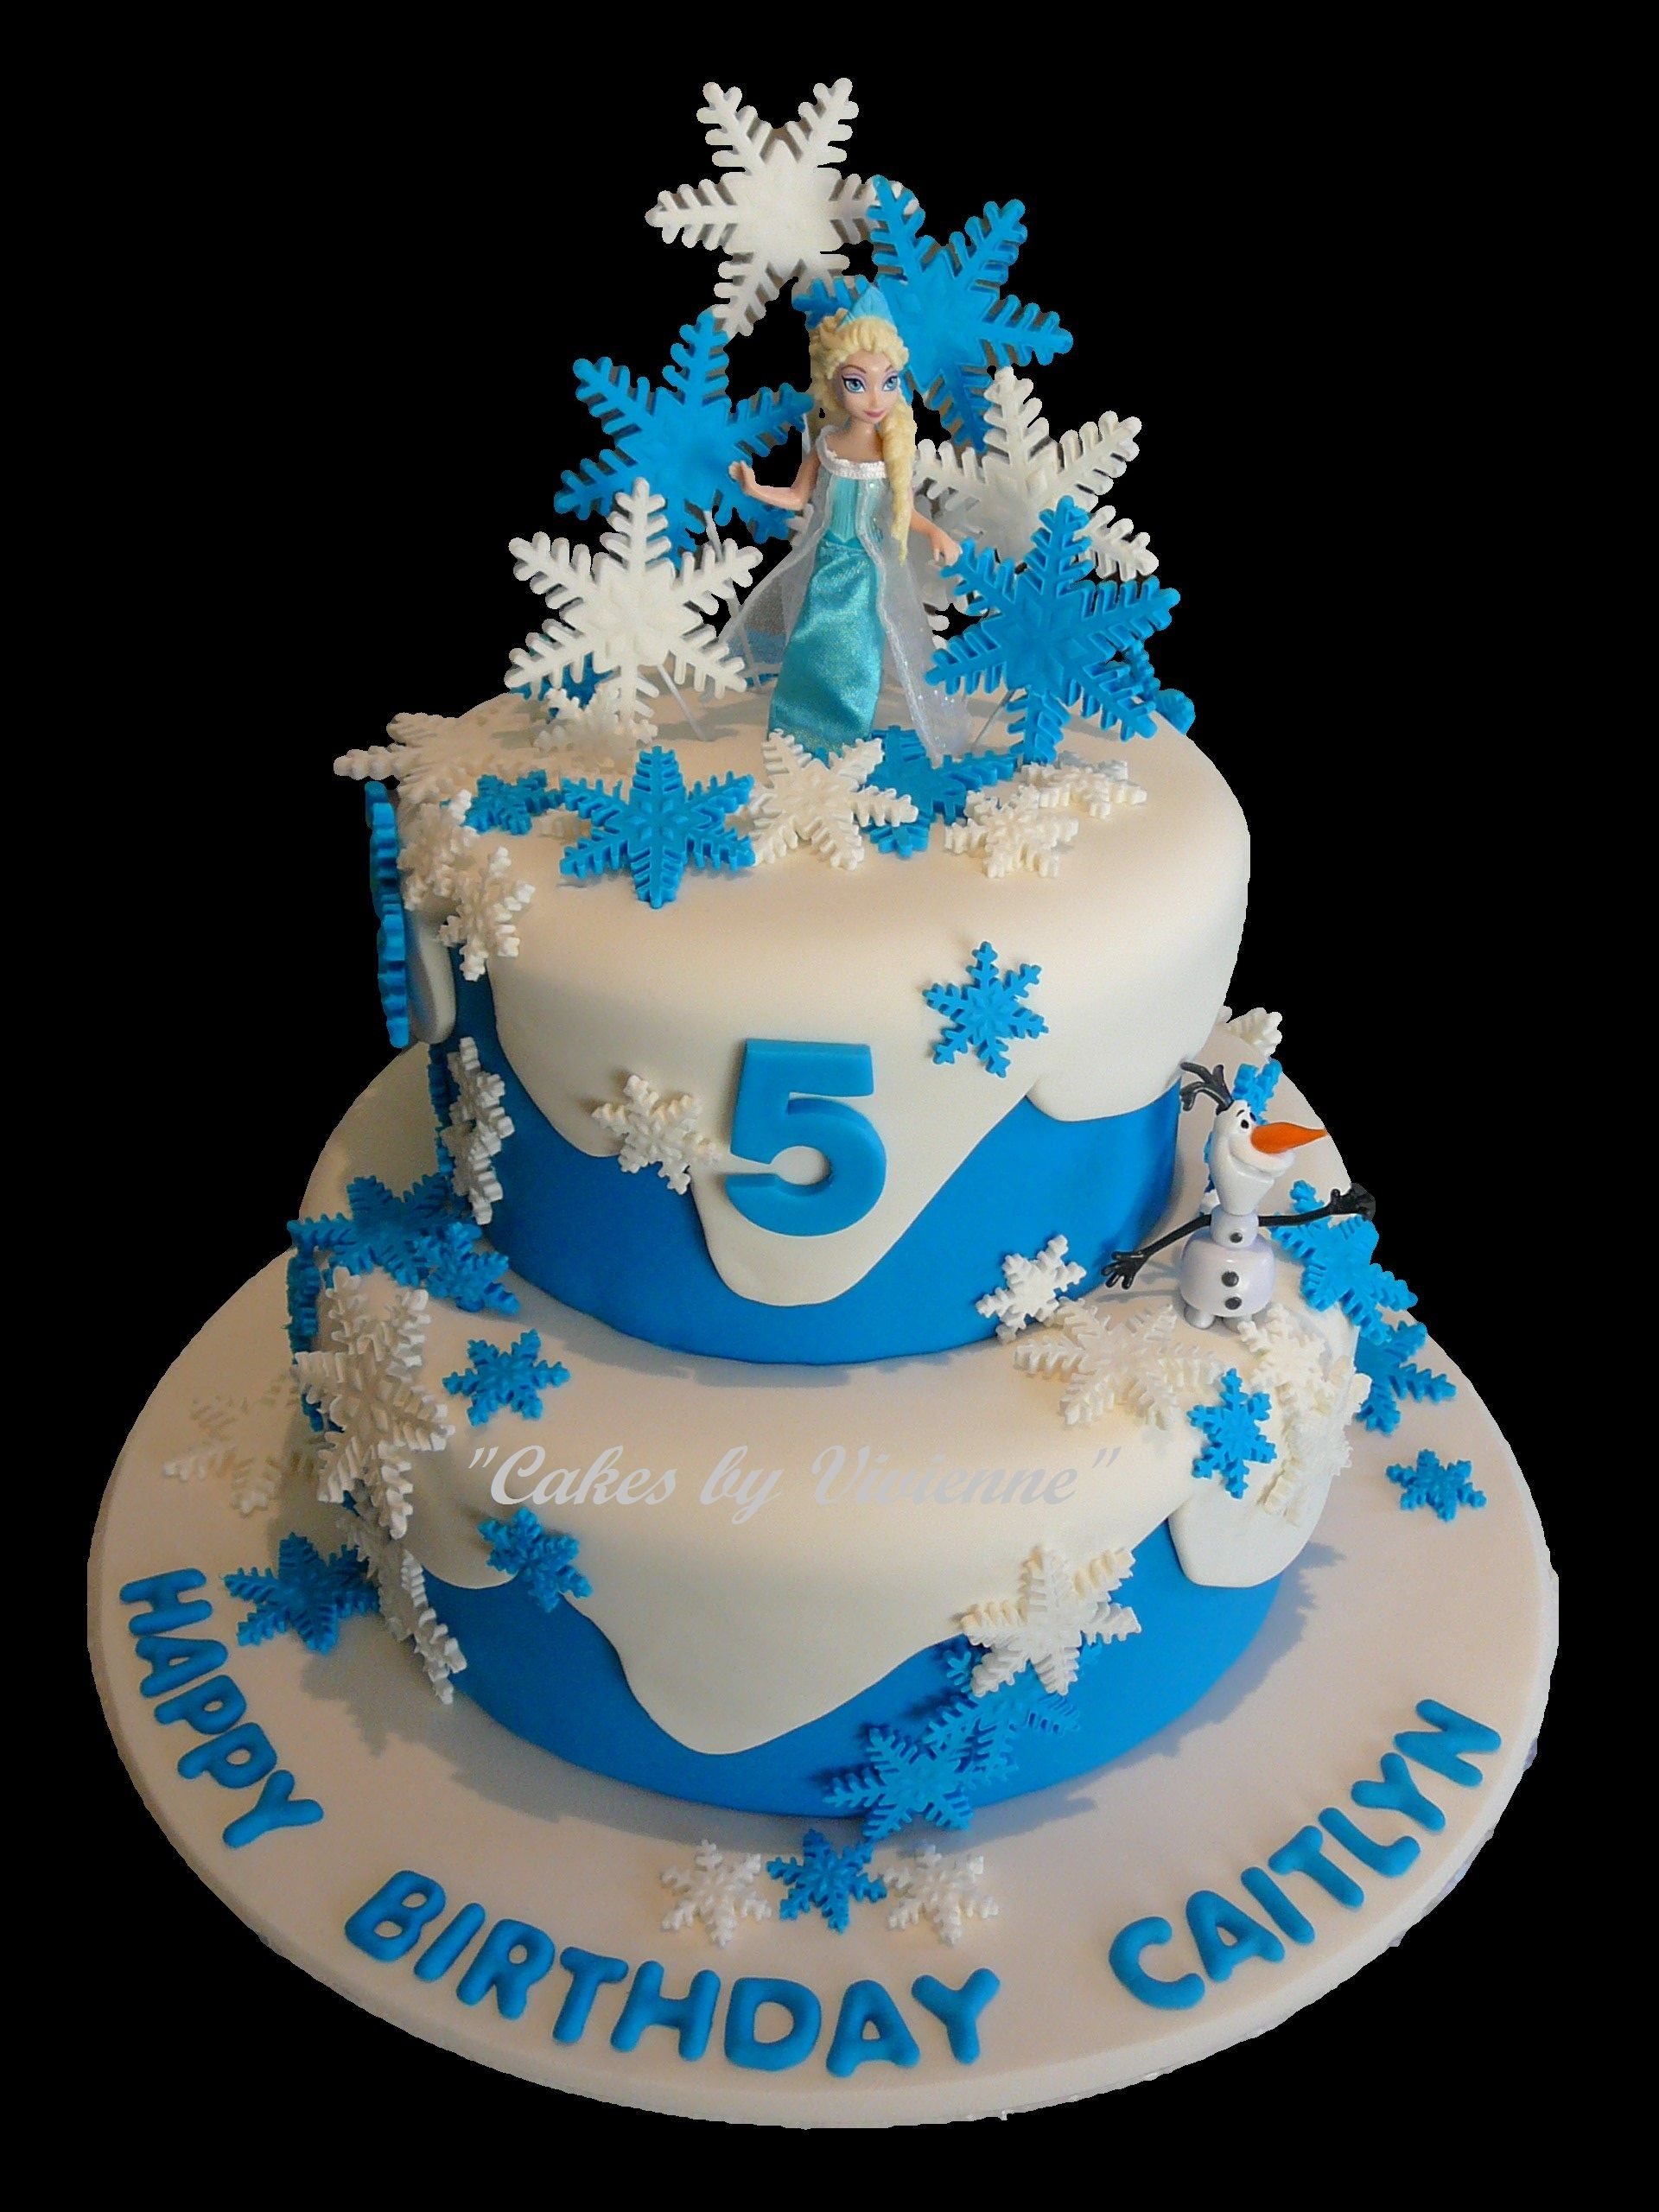 Frozen Themed Birthday Cake Frozen Themed Birthday Cake For A 5 Year Old Featuring Elsa Olaf